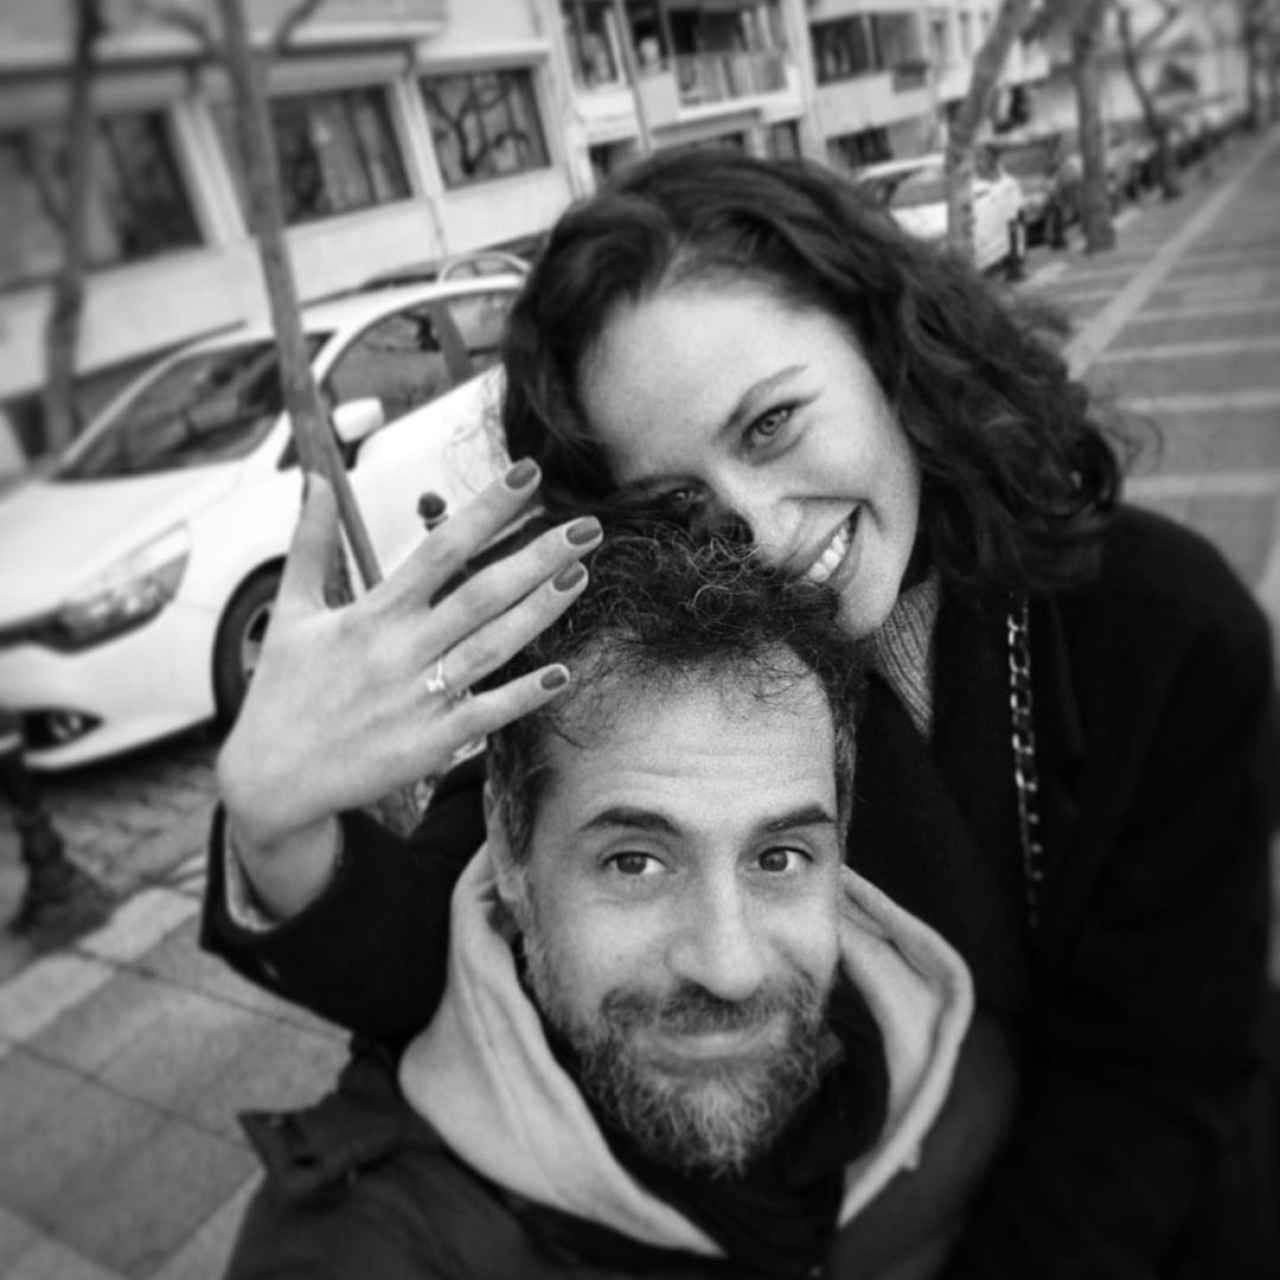 İlayda Çevik with her partner in an image on her Instagram account.